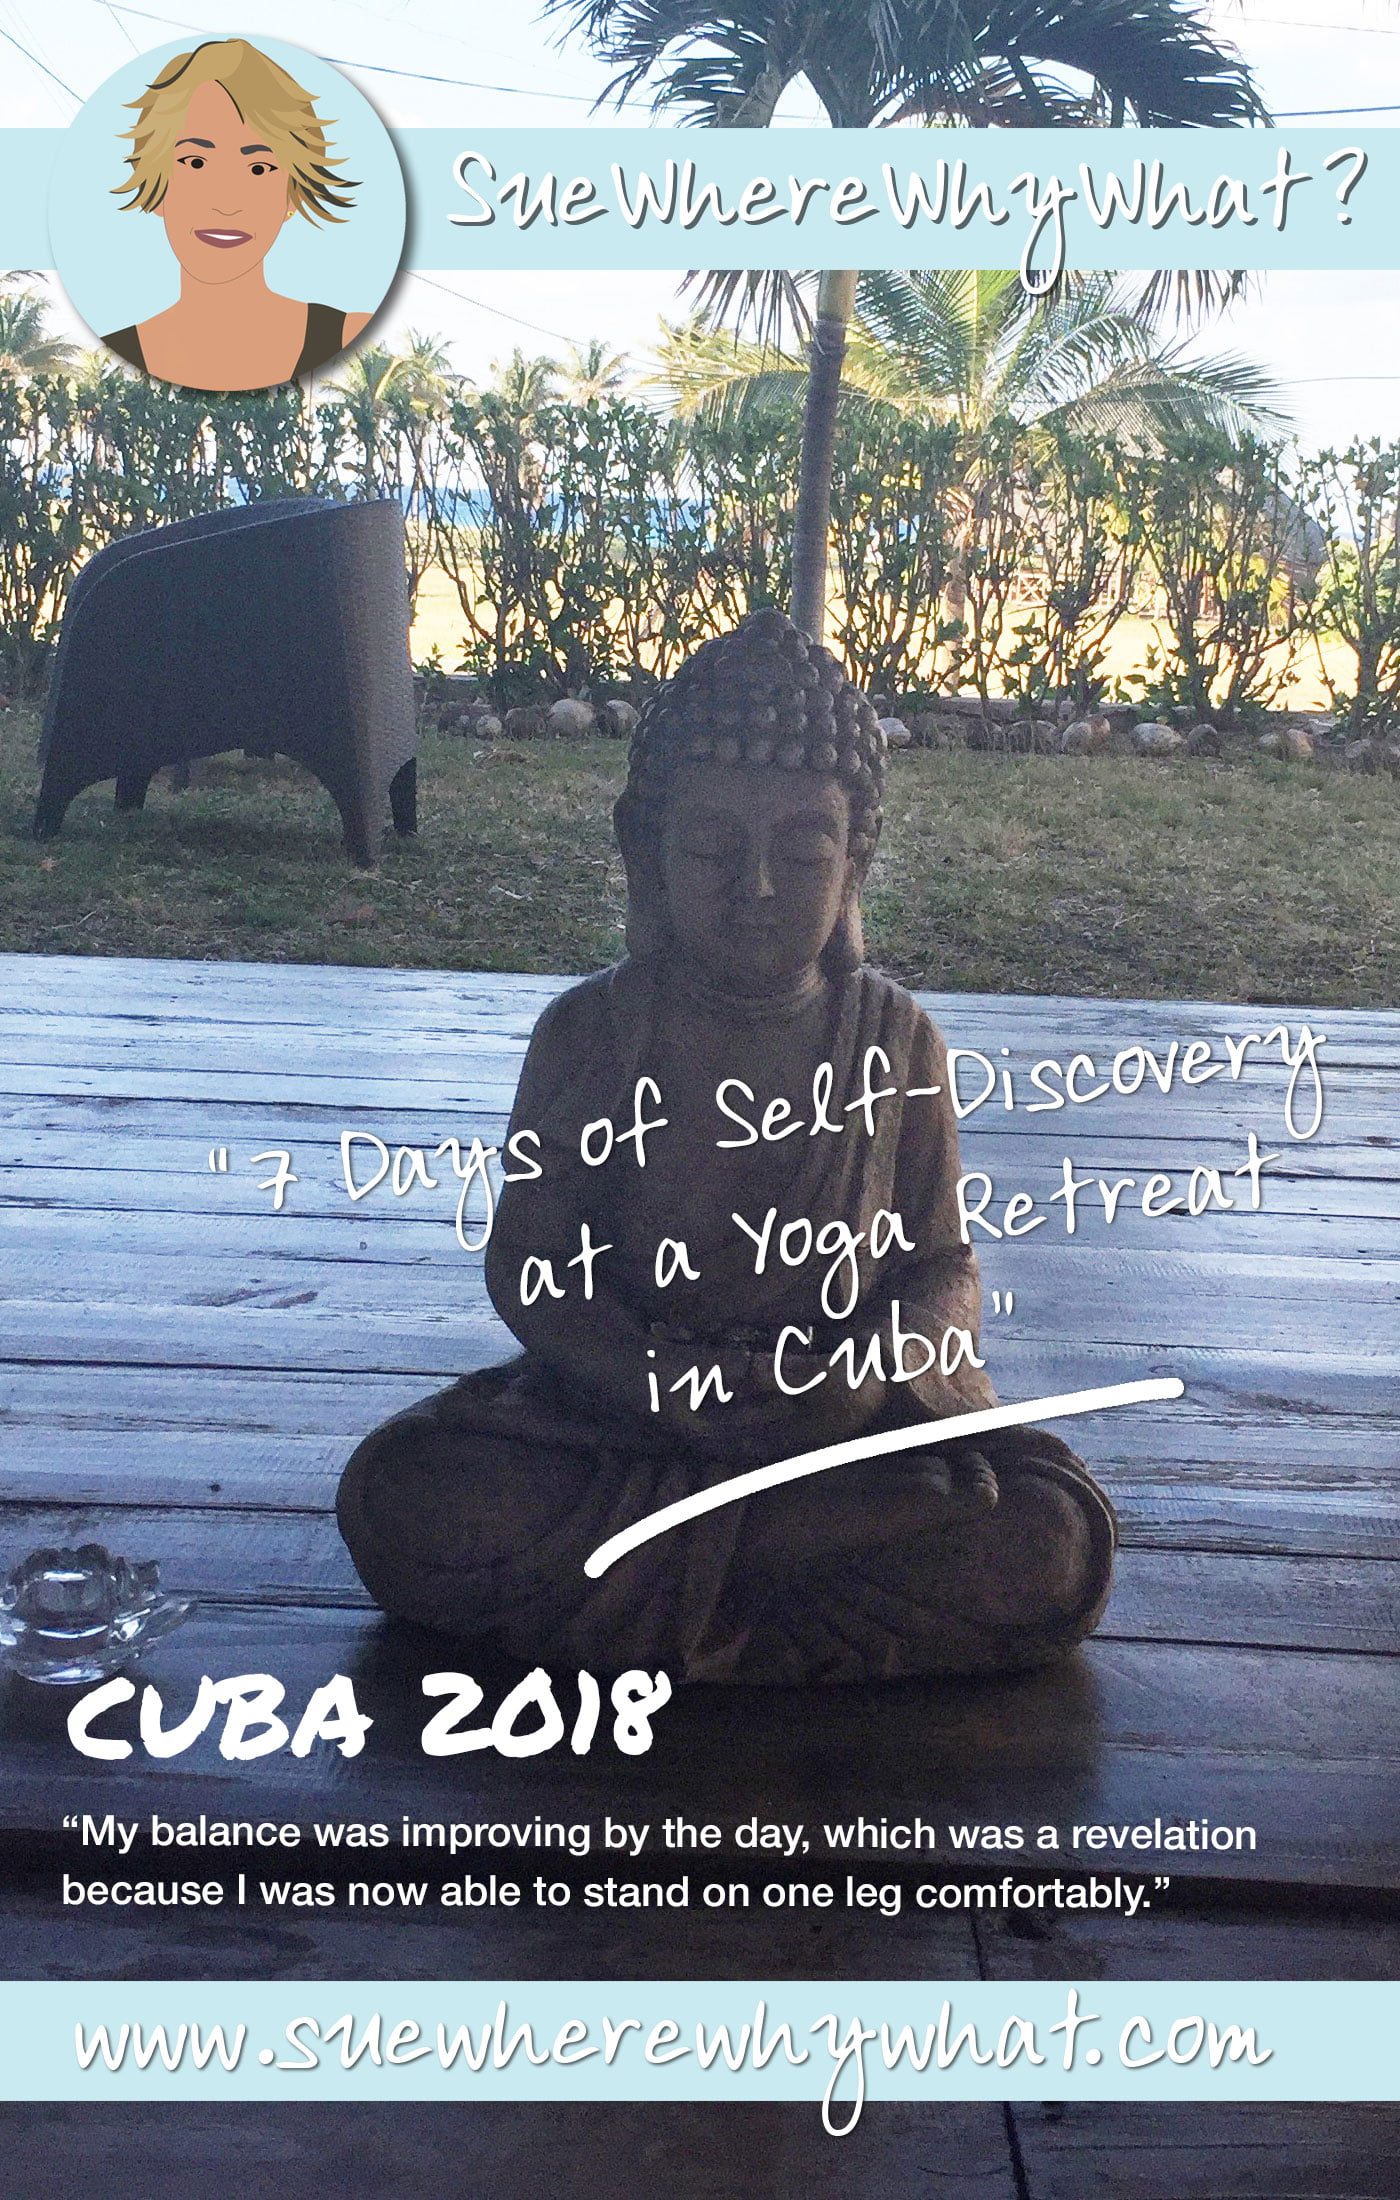 7 Days of Self-Discovery at a Yoga Retreat in Cuba (Part 2)